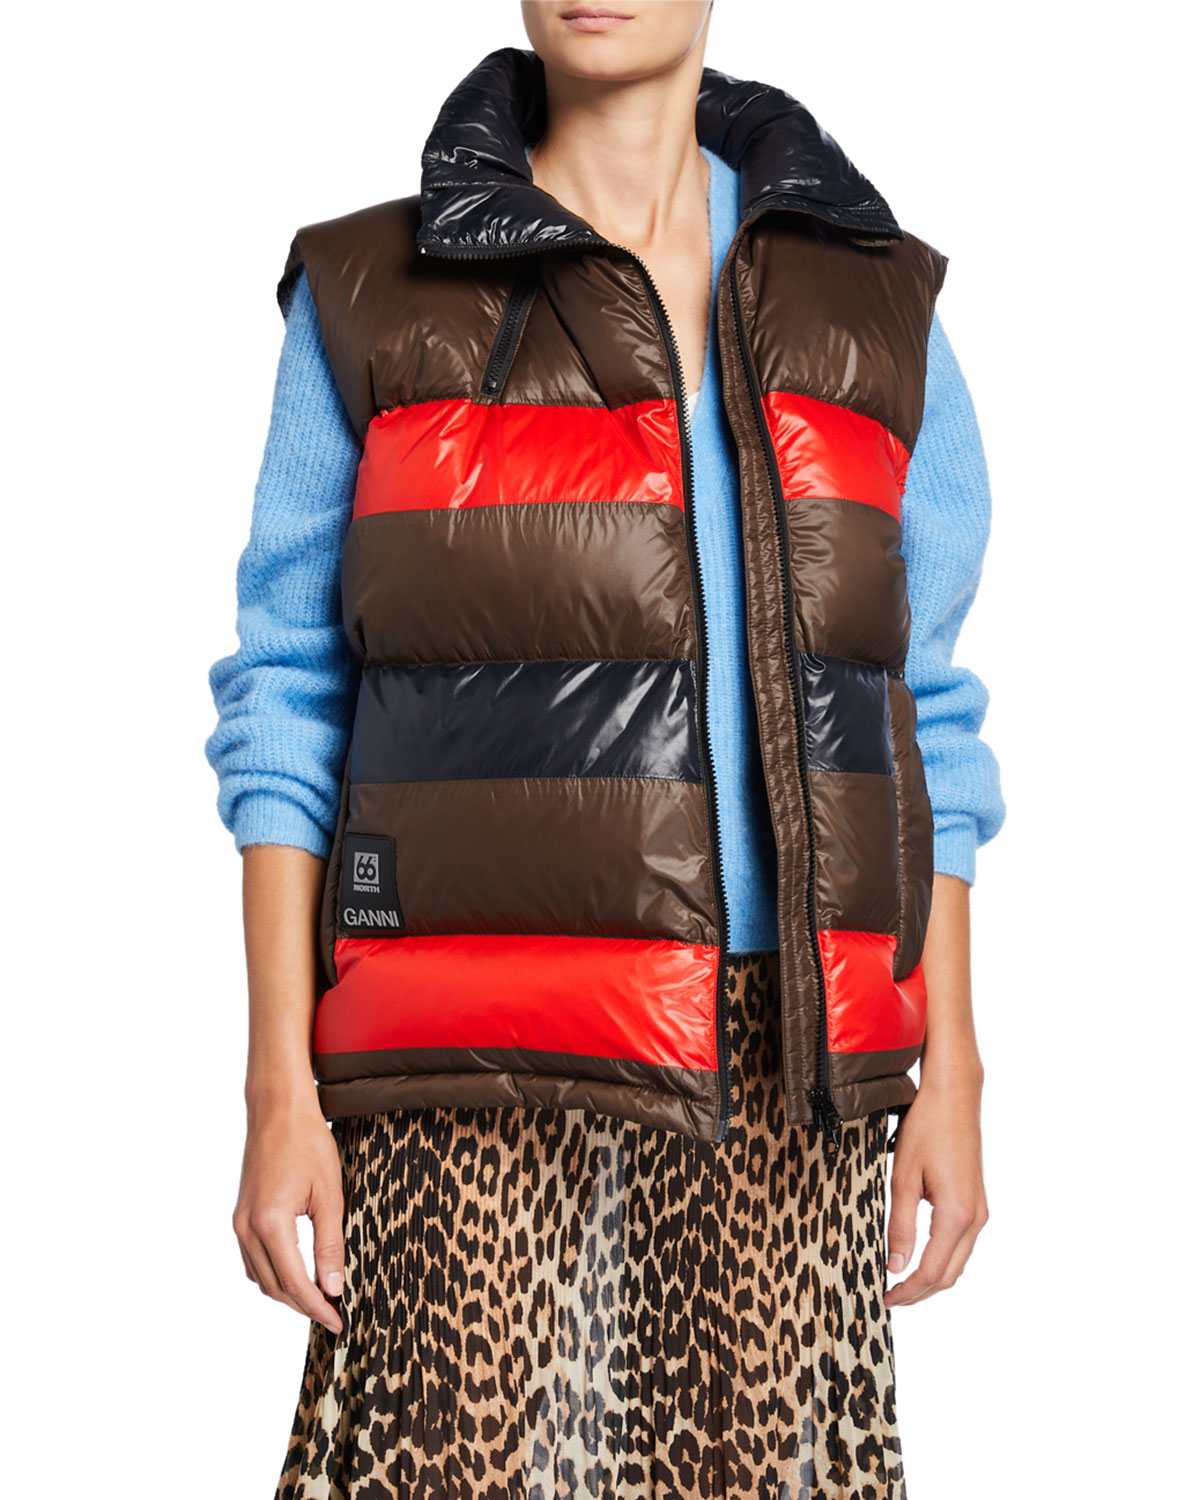 Ganni Tops X 66 NORTH ASKJA COLORBLOCK DOWN-FILL VEST